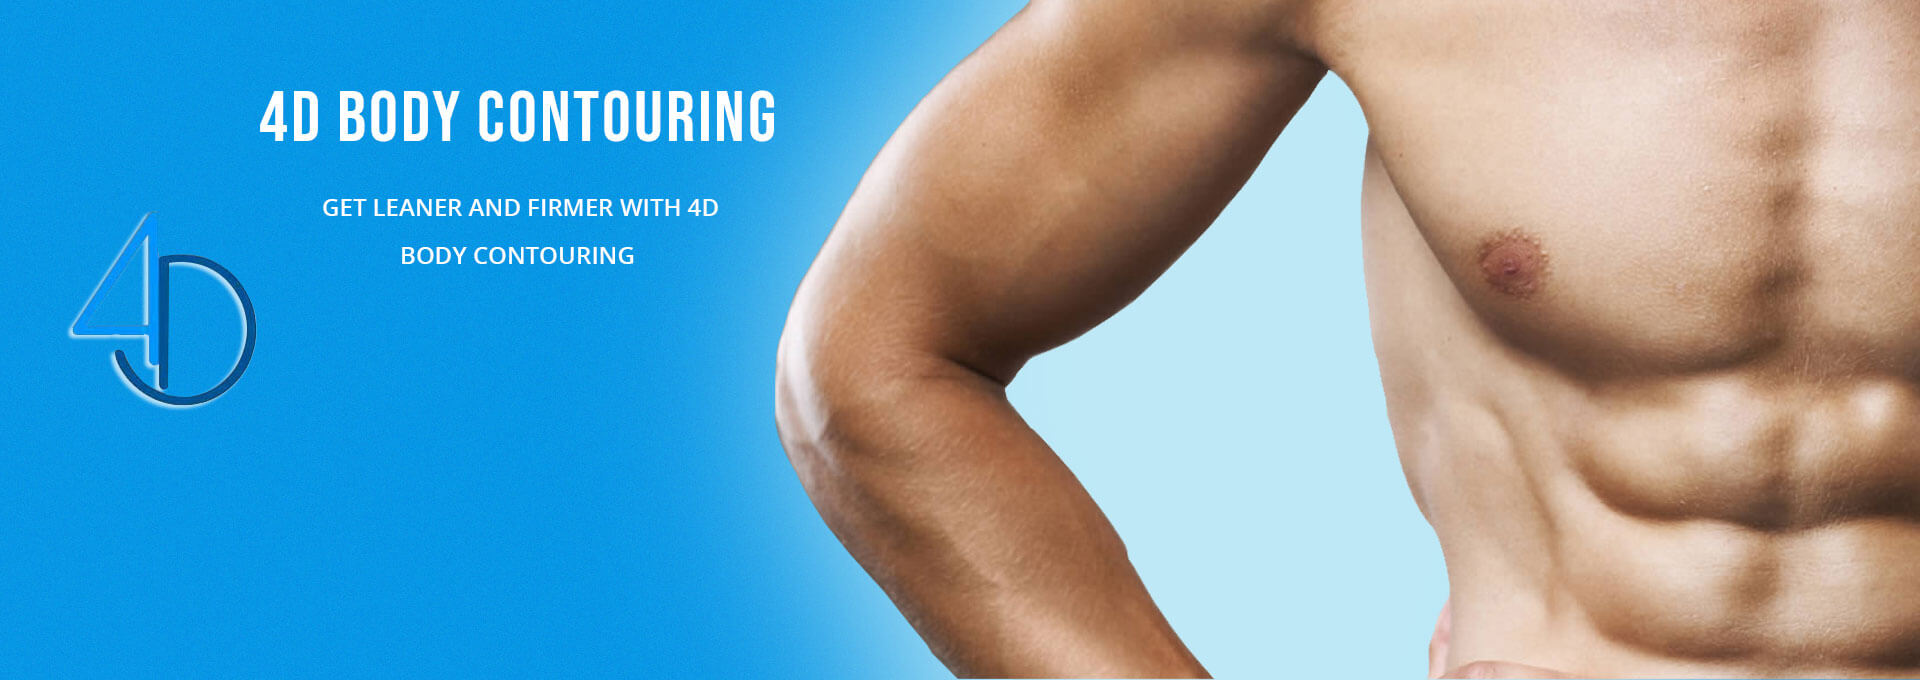 4D Body Contouring in delhi